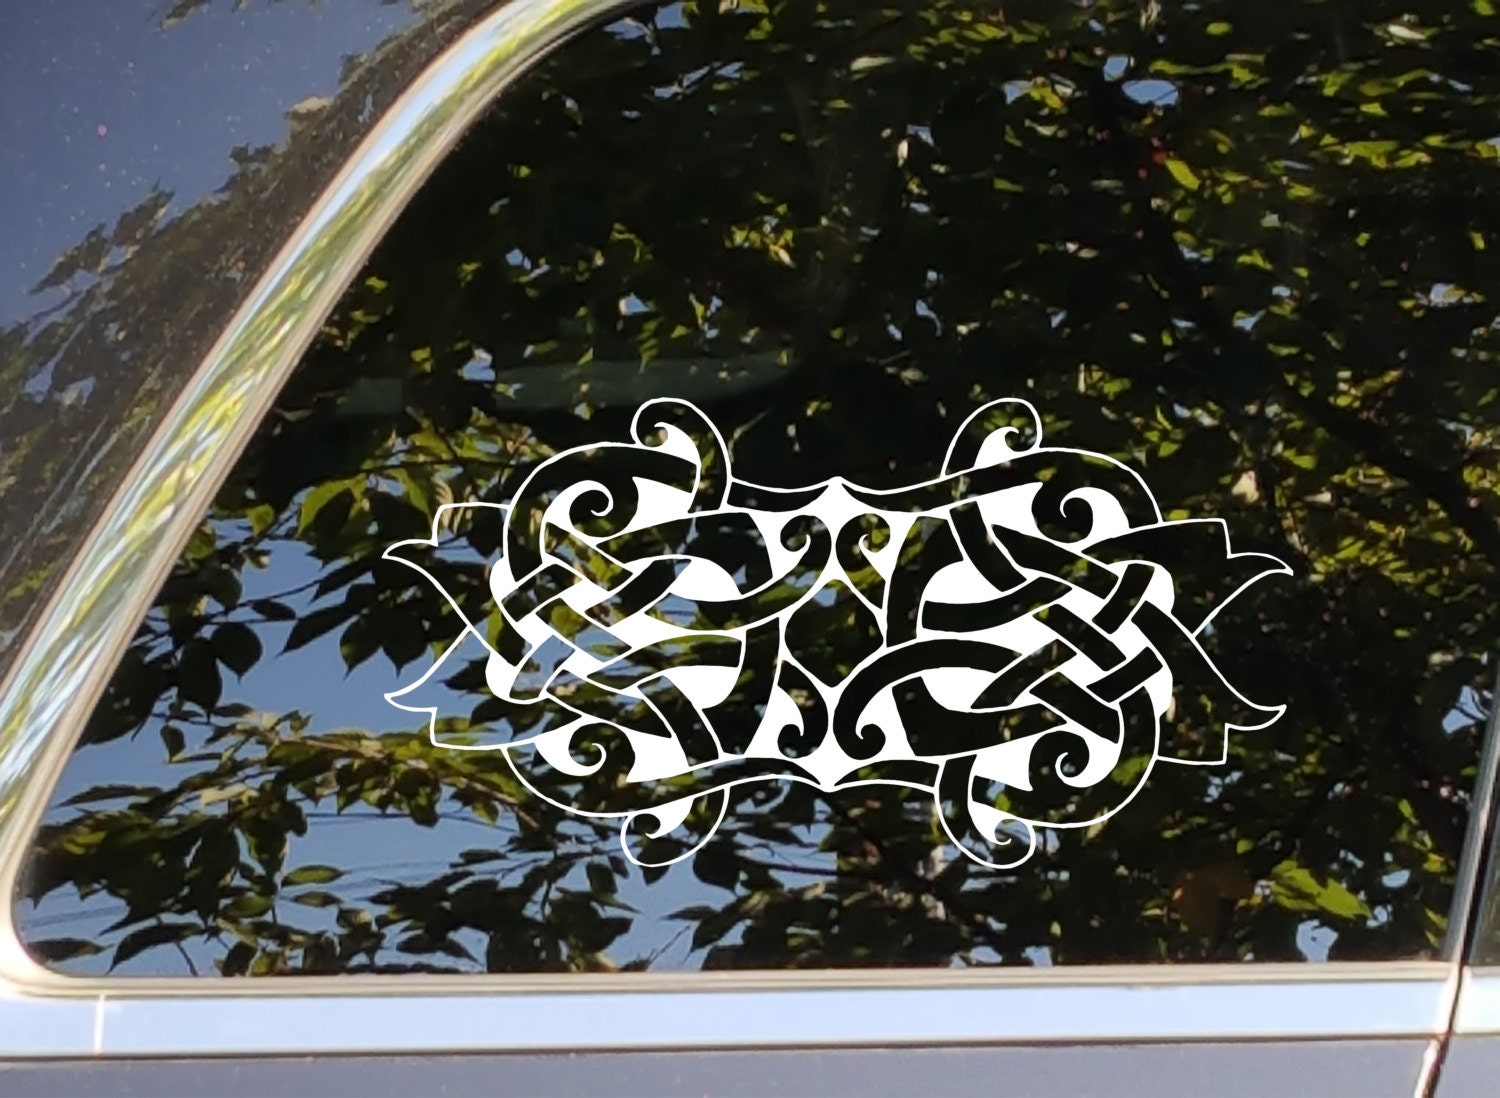 Celtic knot vinyl decal sticker bumper sticker accessory for automotive car cell computer cups glass mugs phone window decoration